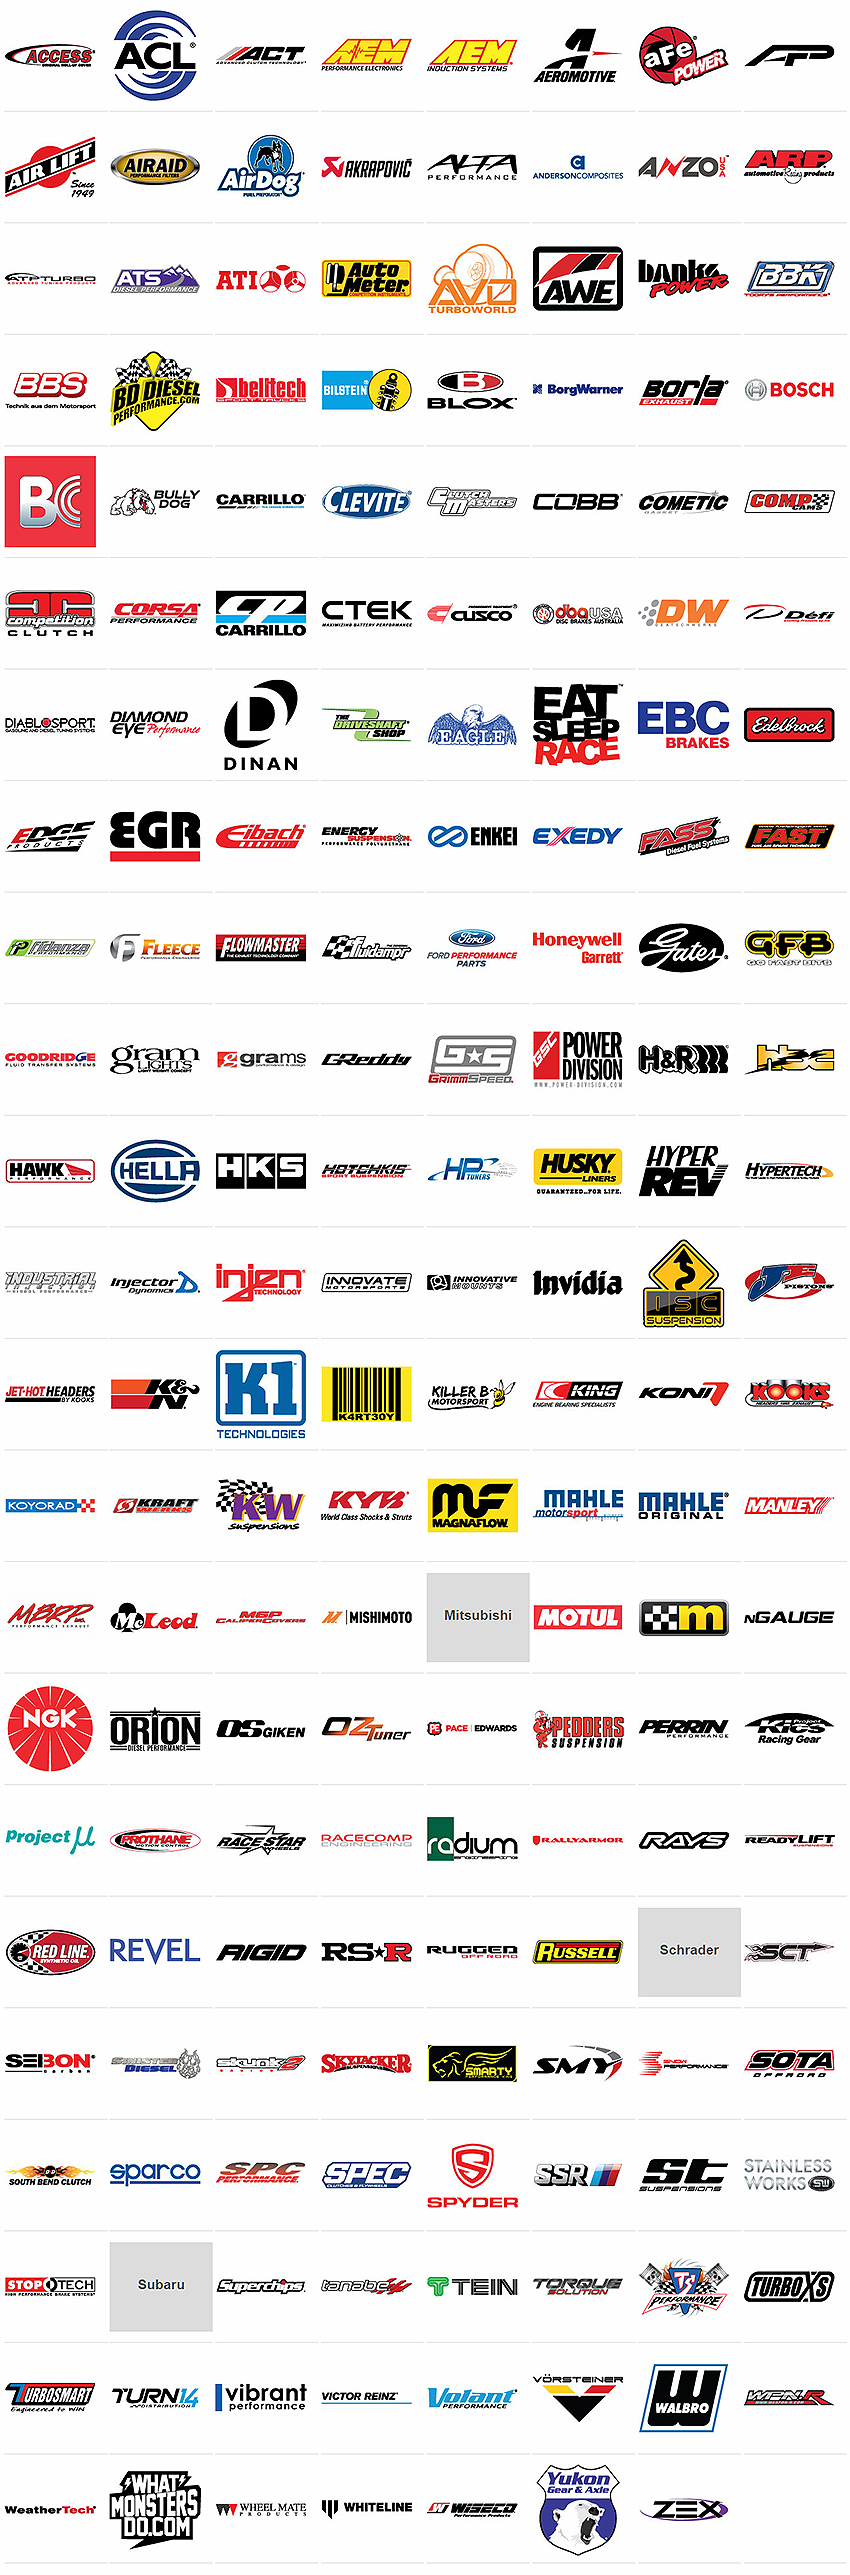 ACL, AEM, Aeromotive, aFe, Airaid, AirDog, ARP, ATS Diesel, AutoMeter, Banks Power, BD Diesel, Belltech, Bilstein, Borla, Bully Dog, Carrillo, Clutch Masters, Cometic Gasket, CORSA Performance, CP Pistons, CTEK, DBA, DeatschWerks, DiabloSport, Dynatech, Eagle, Edge, Eibach, Energy Suspension, FASS Fuel Systems, Fidanza, Fleece Performance, Flowmaster, Flowtech, Fluidampr, Ford Racing, Gates, Goodridge, H&R, Hawk Performance, Hella, Holley, Hooker, Hotchkis, Husky Liners, Hypertech, Industrial Injection, Injector Dynamics, Innovate Motorsports, JE Pistons, K&N Engineering, King Engine Bearings, KONI, Kooks Headers, KW, KYB, Magnaflow, Manley Performance, MBRP, McLeod Racing, Mishimoto, Motul, NGK, Range Technology, ReadyLift, Red Line, REV-X, Rigid Industries, Russell, SCT Performance, Sinister Diesel, Smarty, Snow Performance, SOTA, South Bend Clutch, SPARCO, SPC Performance, SPEC, Stainless works, Stoptech, Superchips, Technafit, TS Performance, Turbosmart, Vibrant, Volant, Walbro, WeatherTech, Wheel Mate, Whiteline, Yukon Gear & Axle